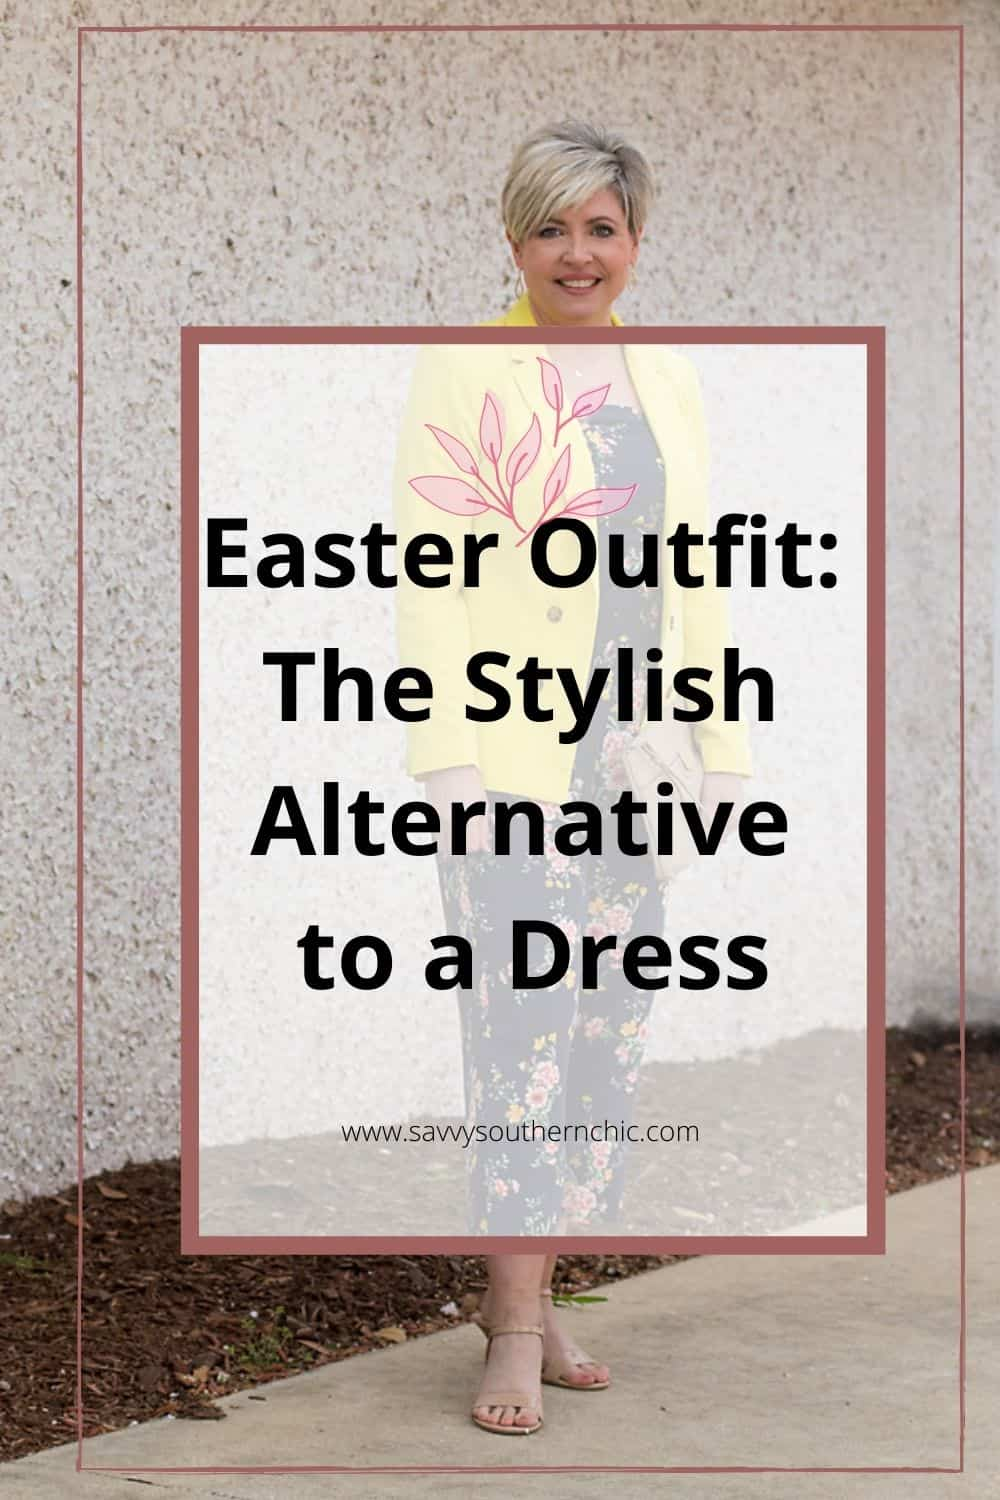 Easter Outfit for women